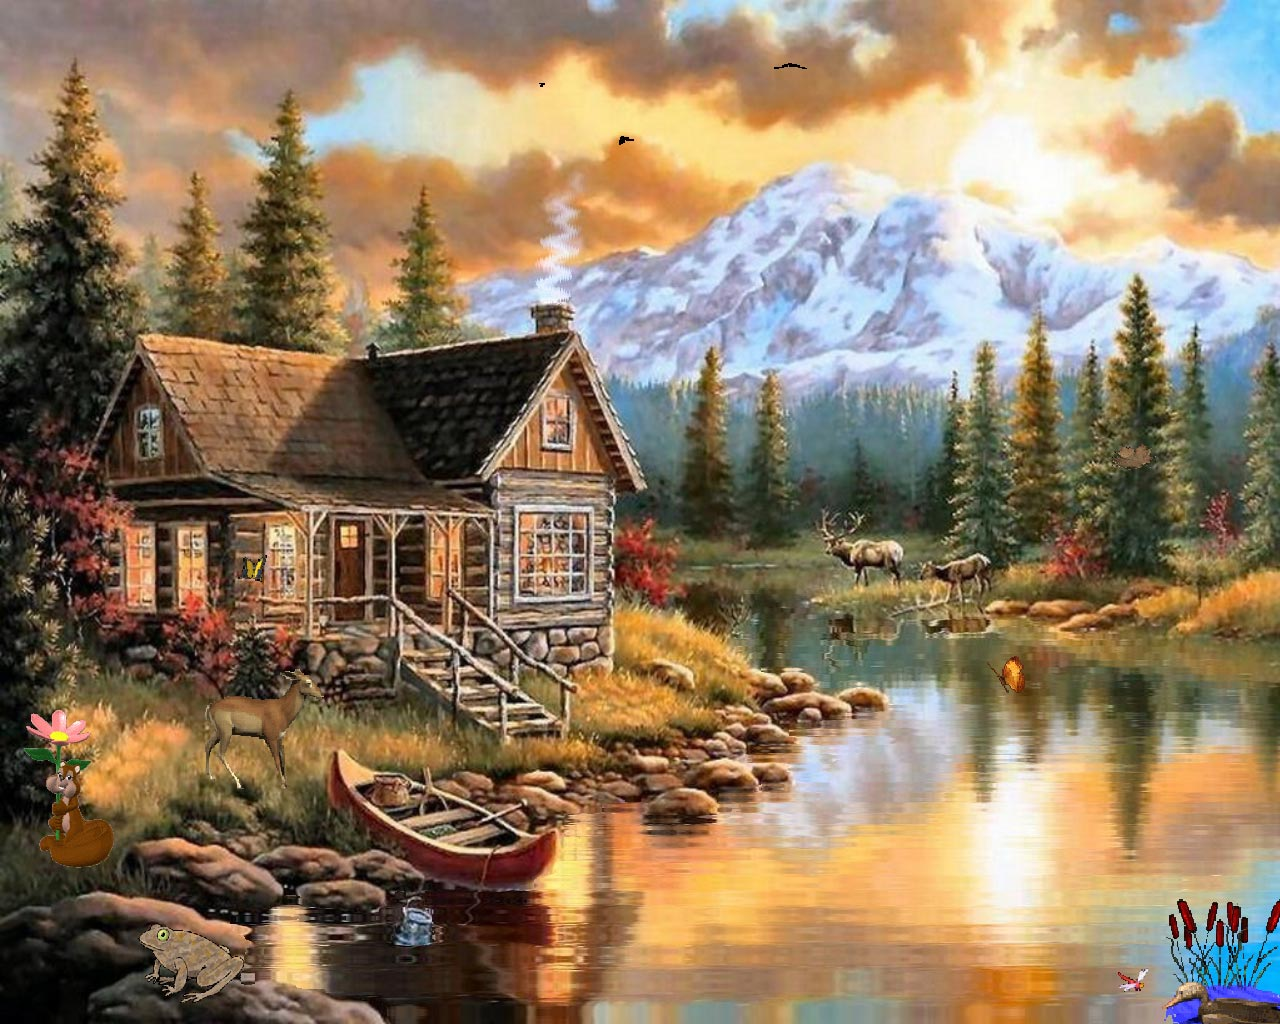 Popular Wallpaper High Quality Scenery - Nature+Scenery+Wallpapers  Pic_378534.jpg